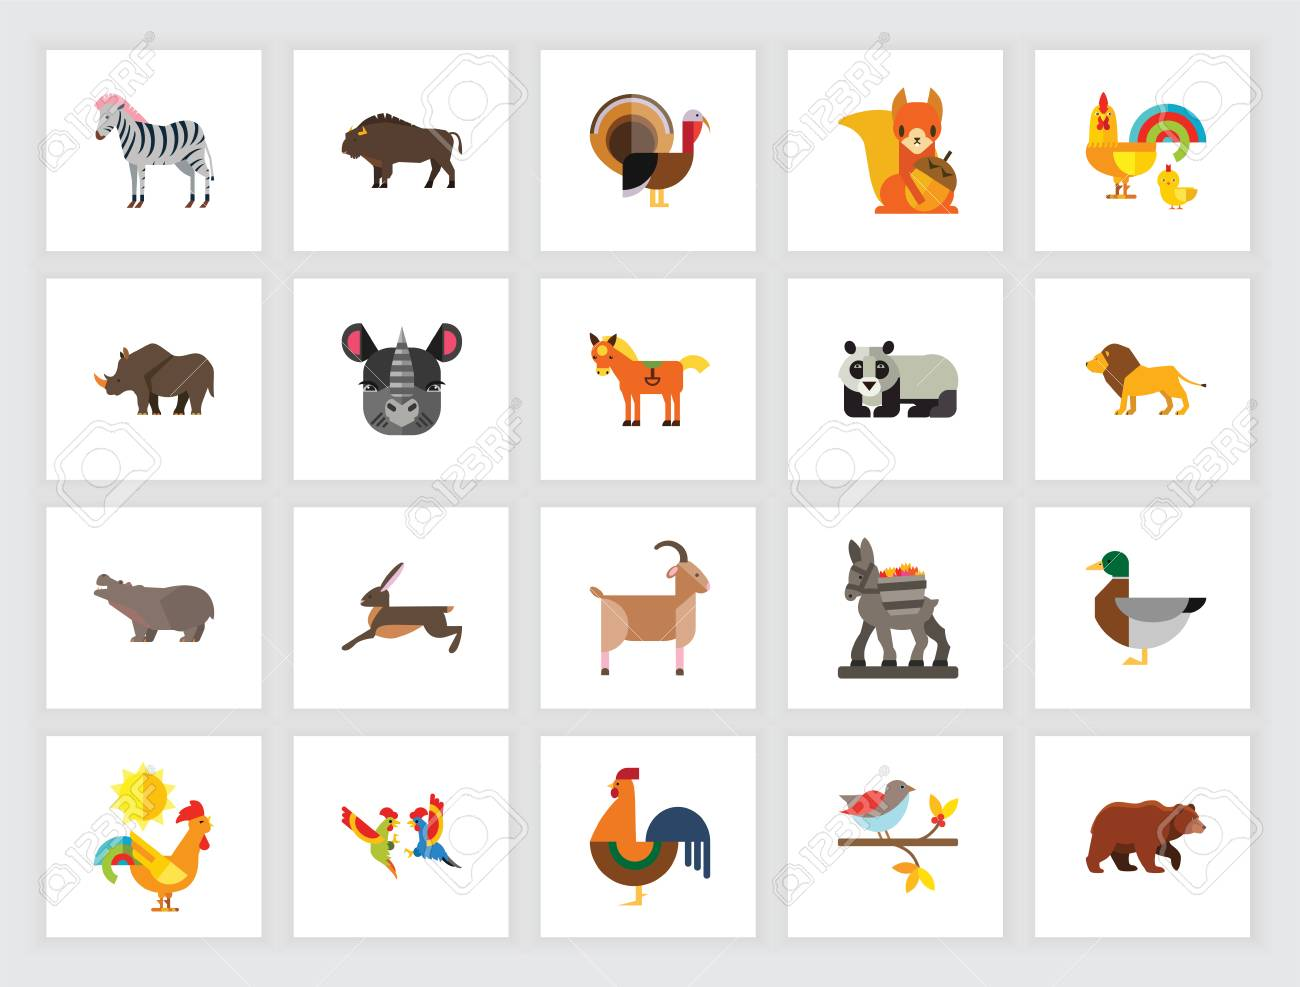 Animal Species Concept. Flat Icon Set. Zoo, Domestic Animals,.. Royalty Free  Cliparts, Vectors, And Stock Illustration. Image 105110864.